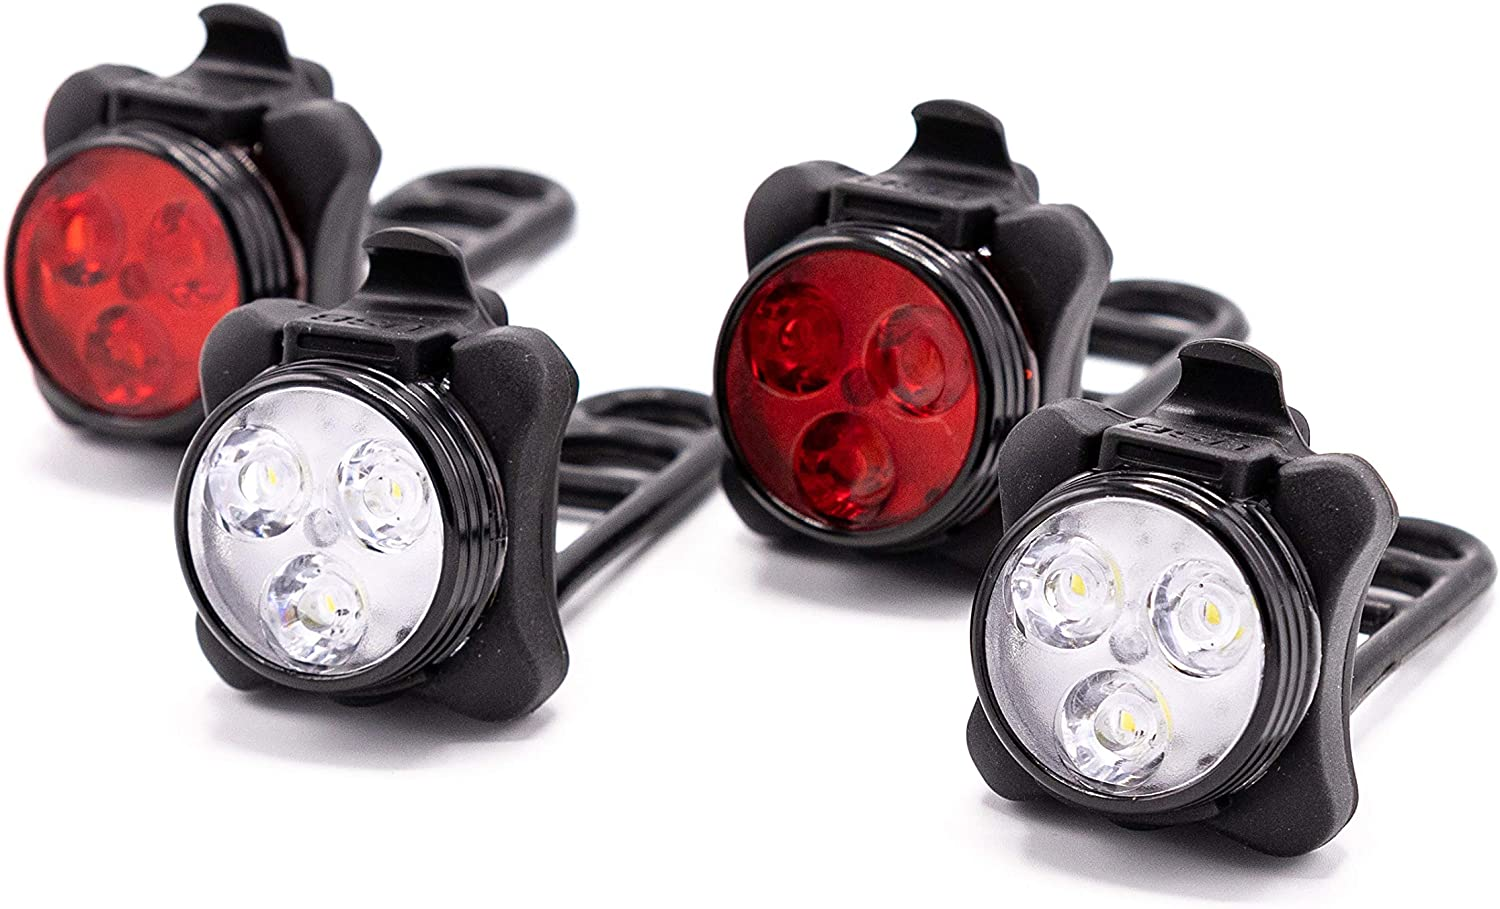 LED Bike Lights MeeQee USB Chargeable Set.